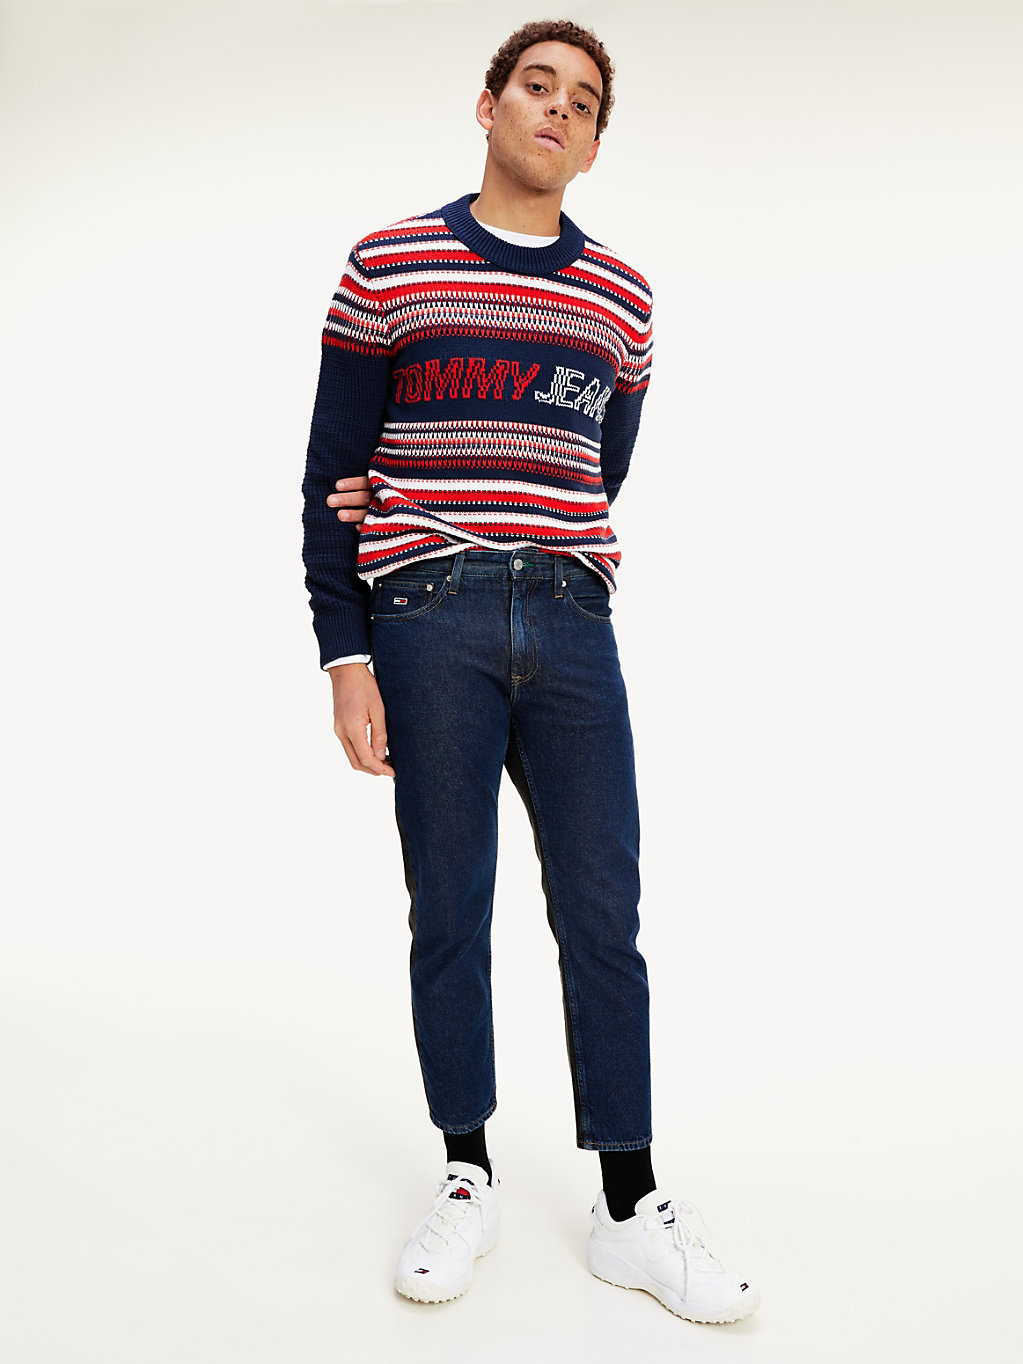 TOMMY JEANS  - TJ SAVE FA MIX RIGID -   - main image